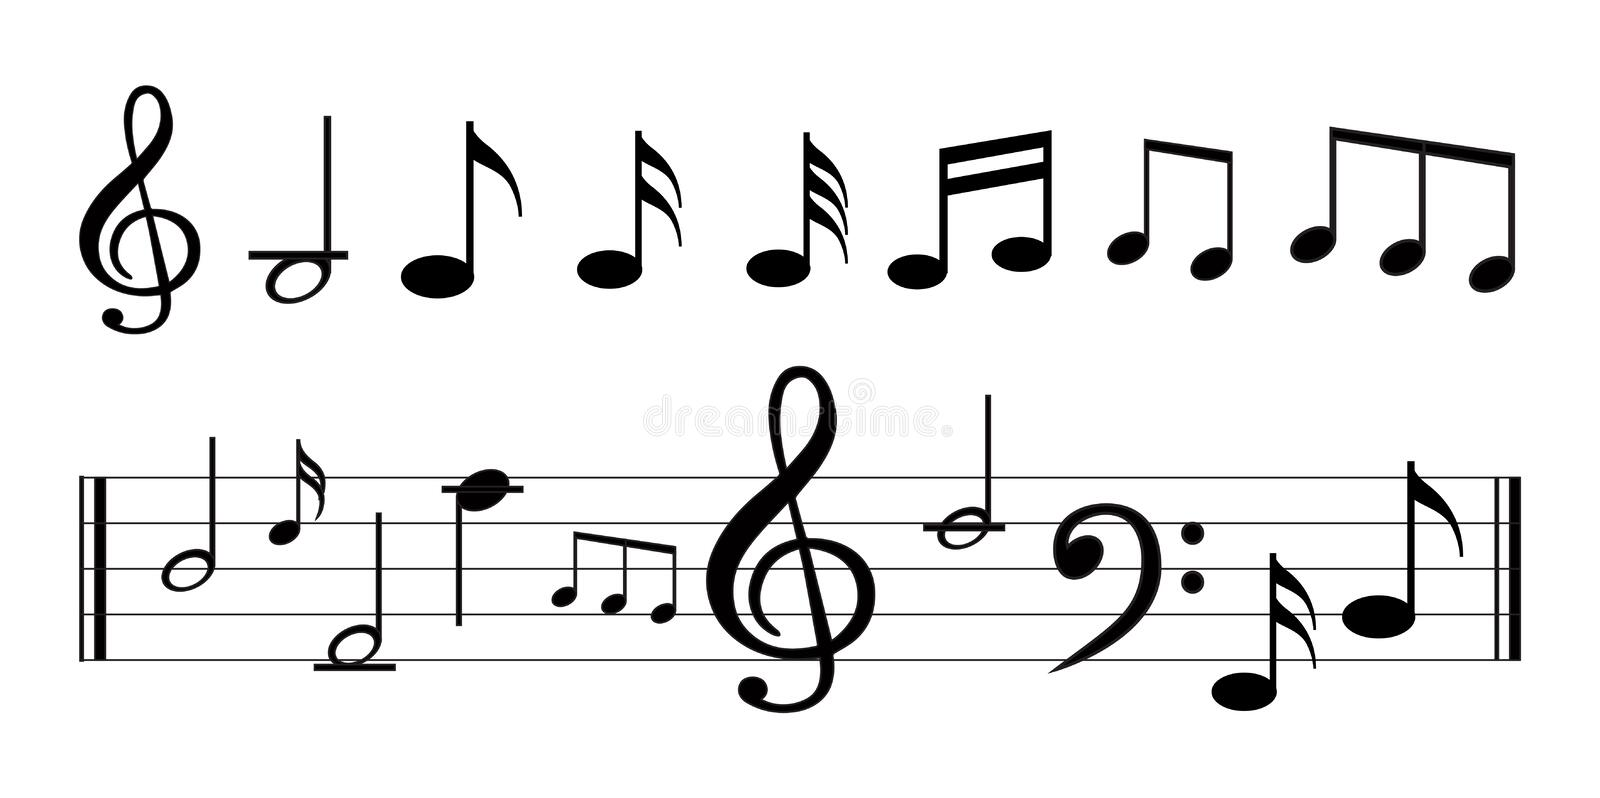 Music Note With Music Symbols Stock Vector Illustration Of Element